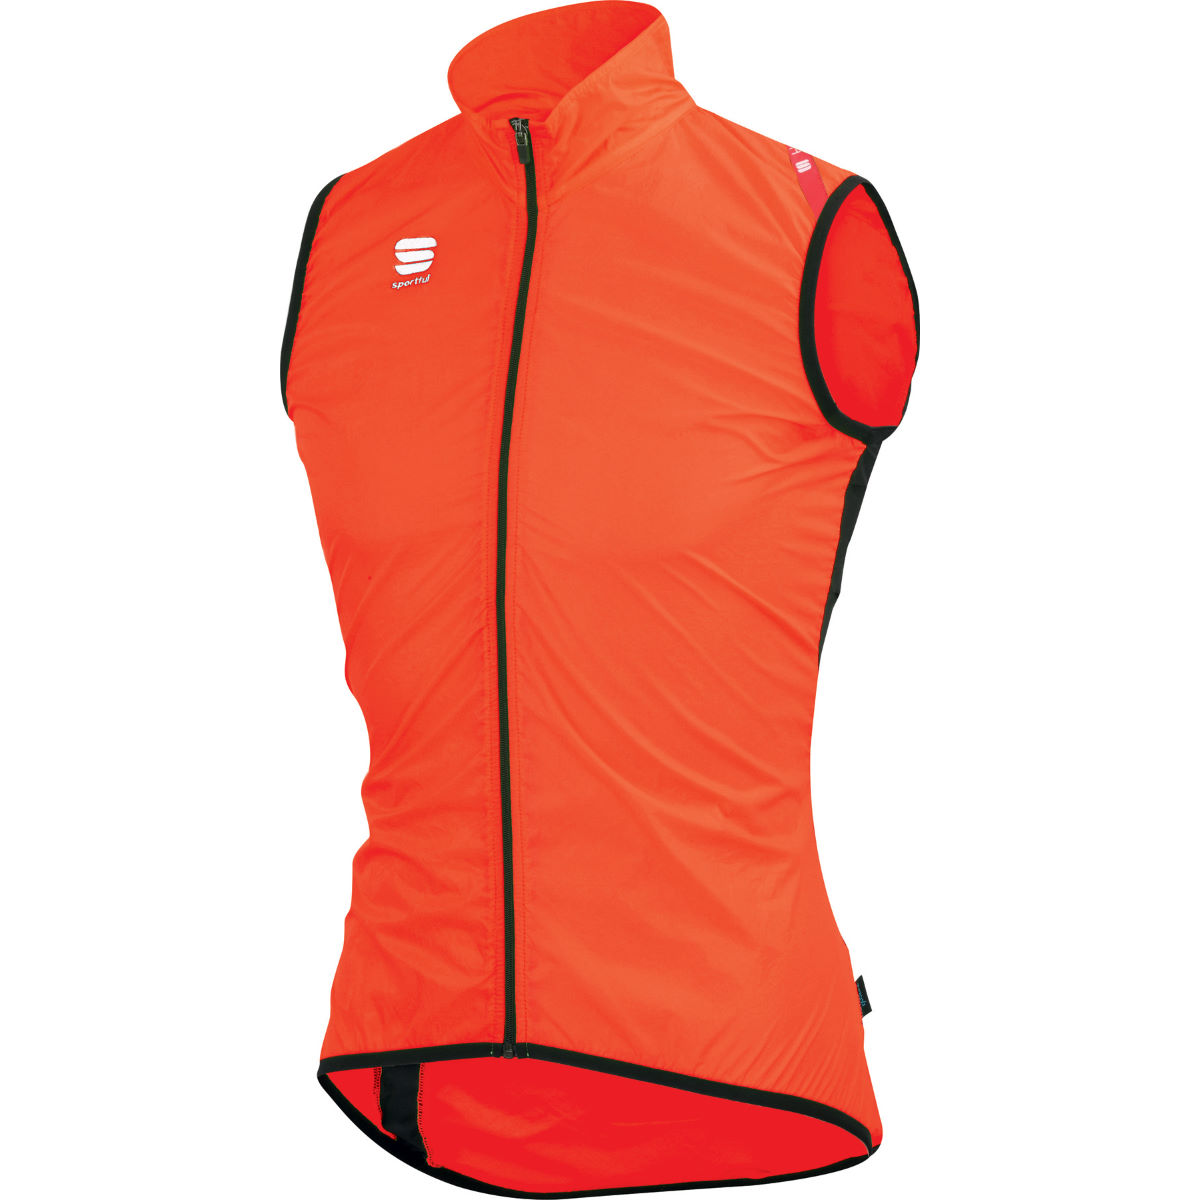 Gilet sans manches Sportful Hot Pack 5 - XS Rouge